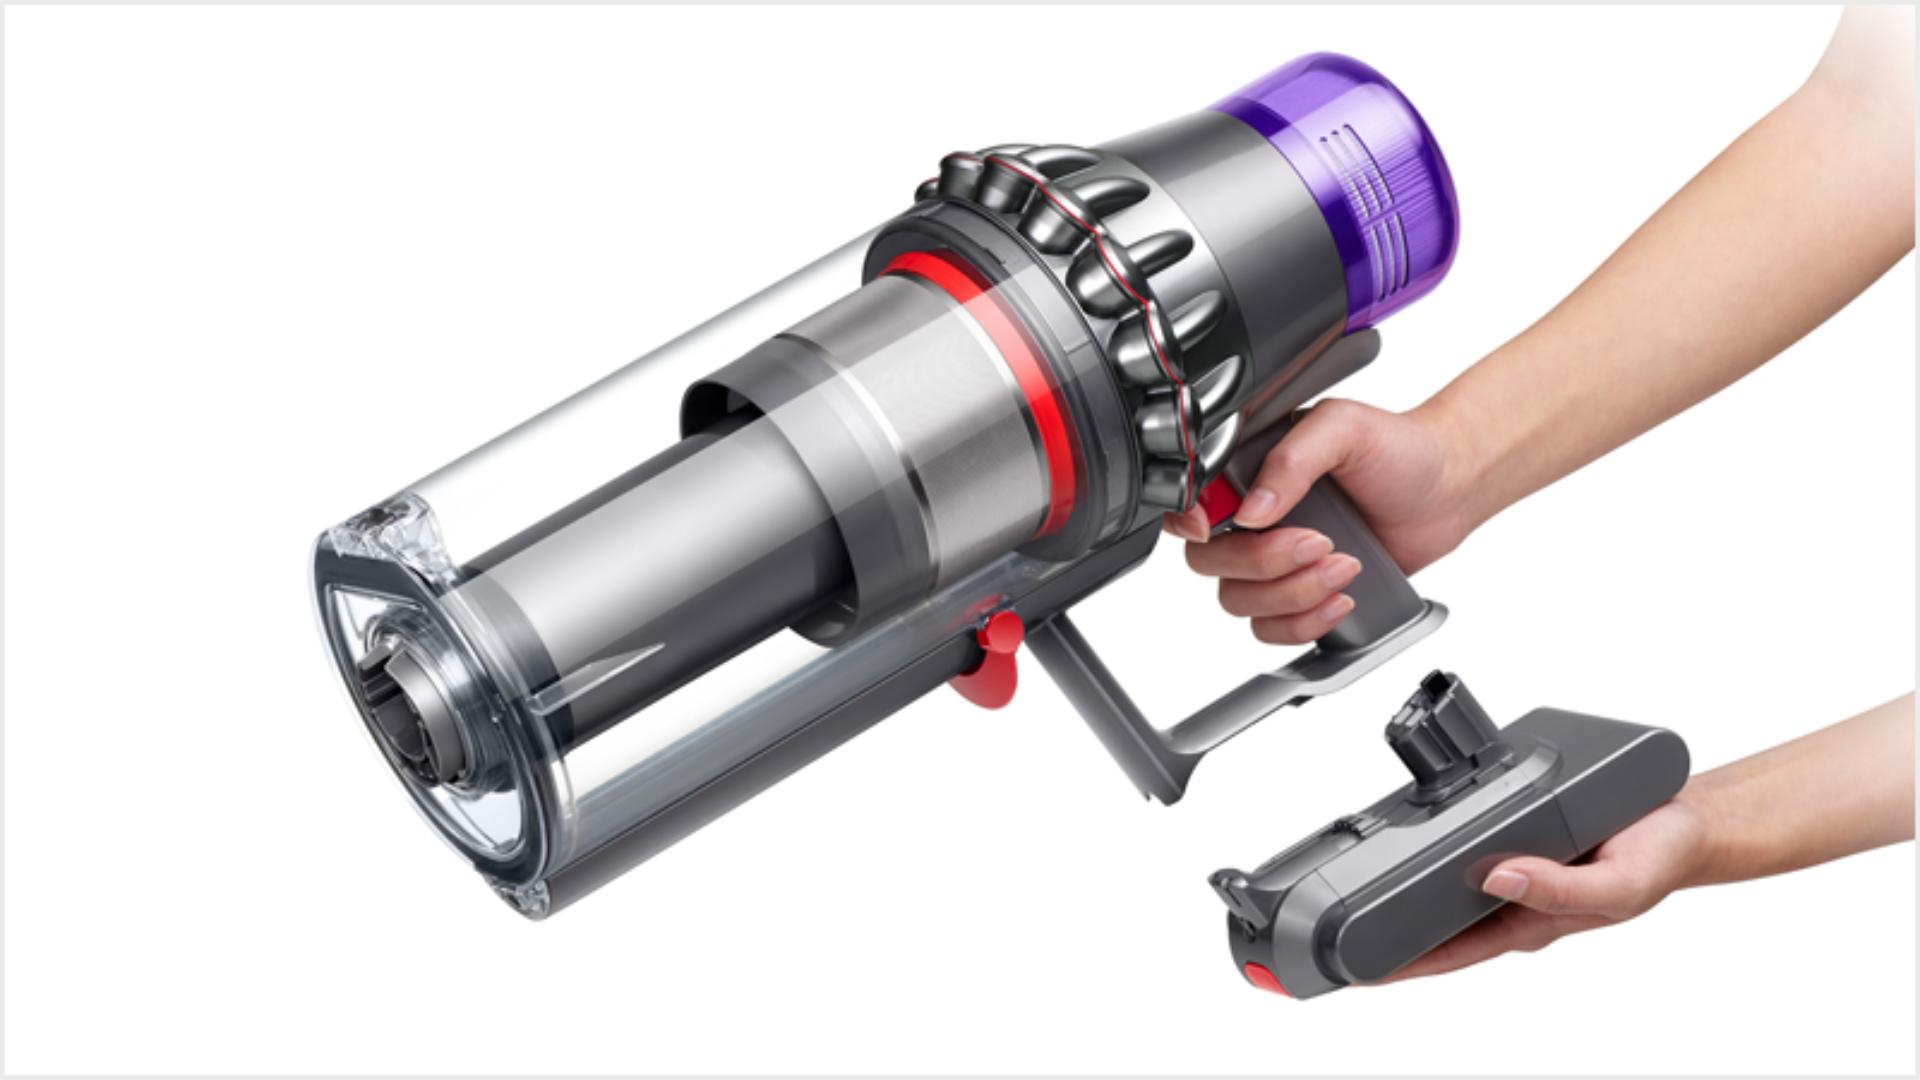 Battery being swapped on a Dyson Outsize vacuum